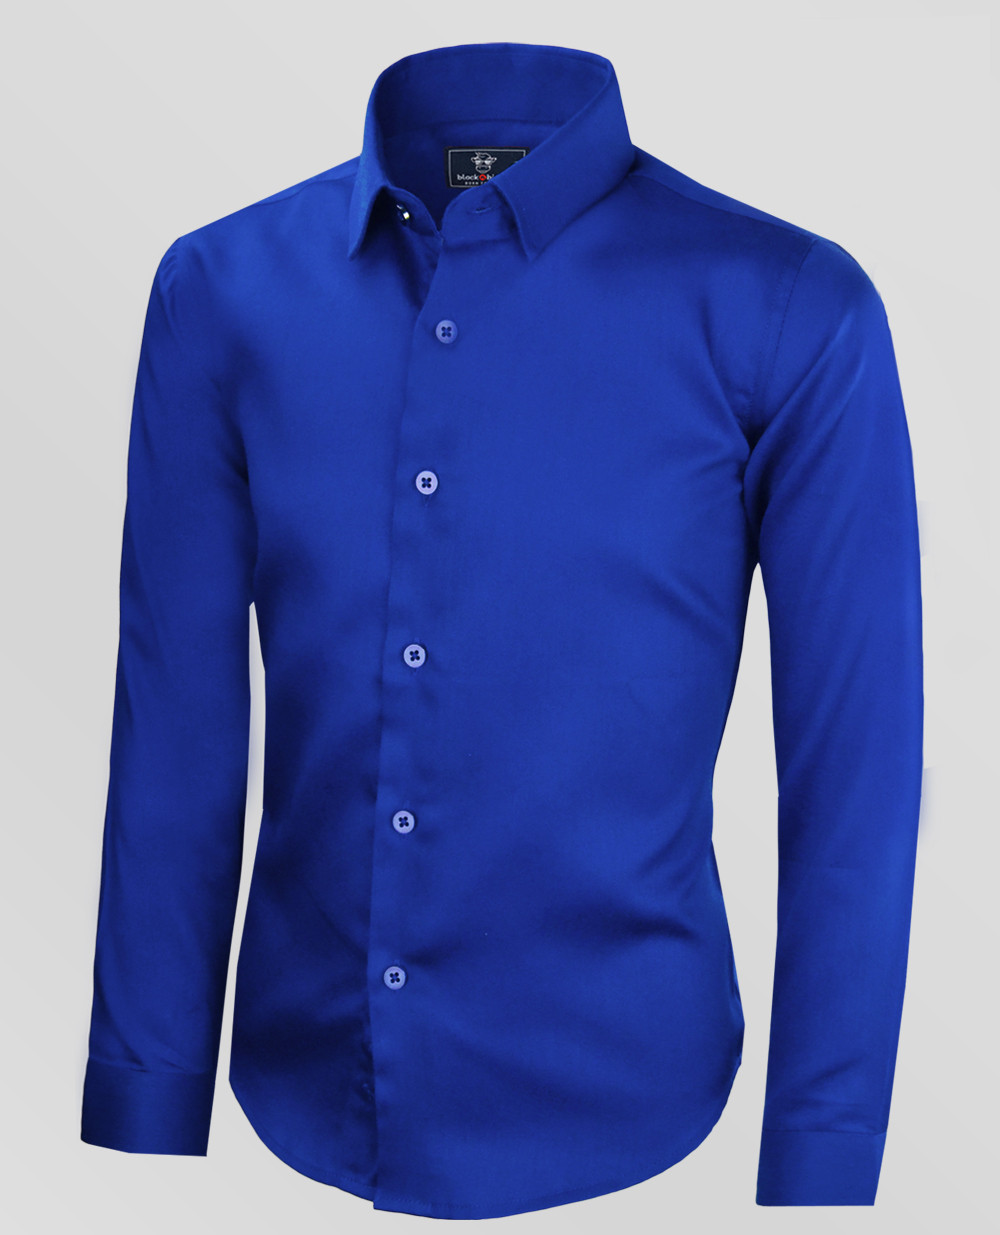 Black Bianco Boys' Signature Sateen Dress Shirt In Blue